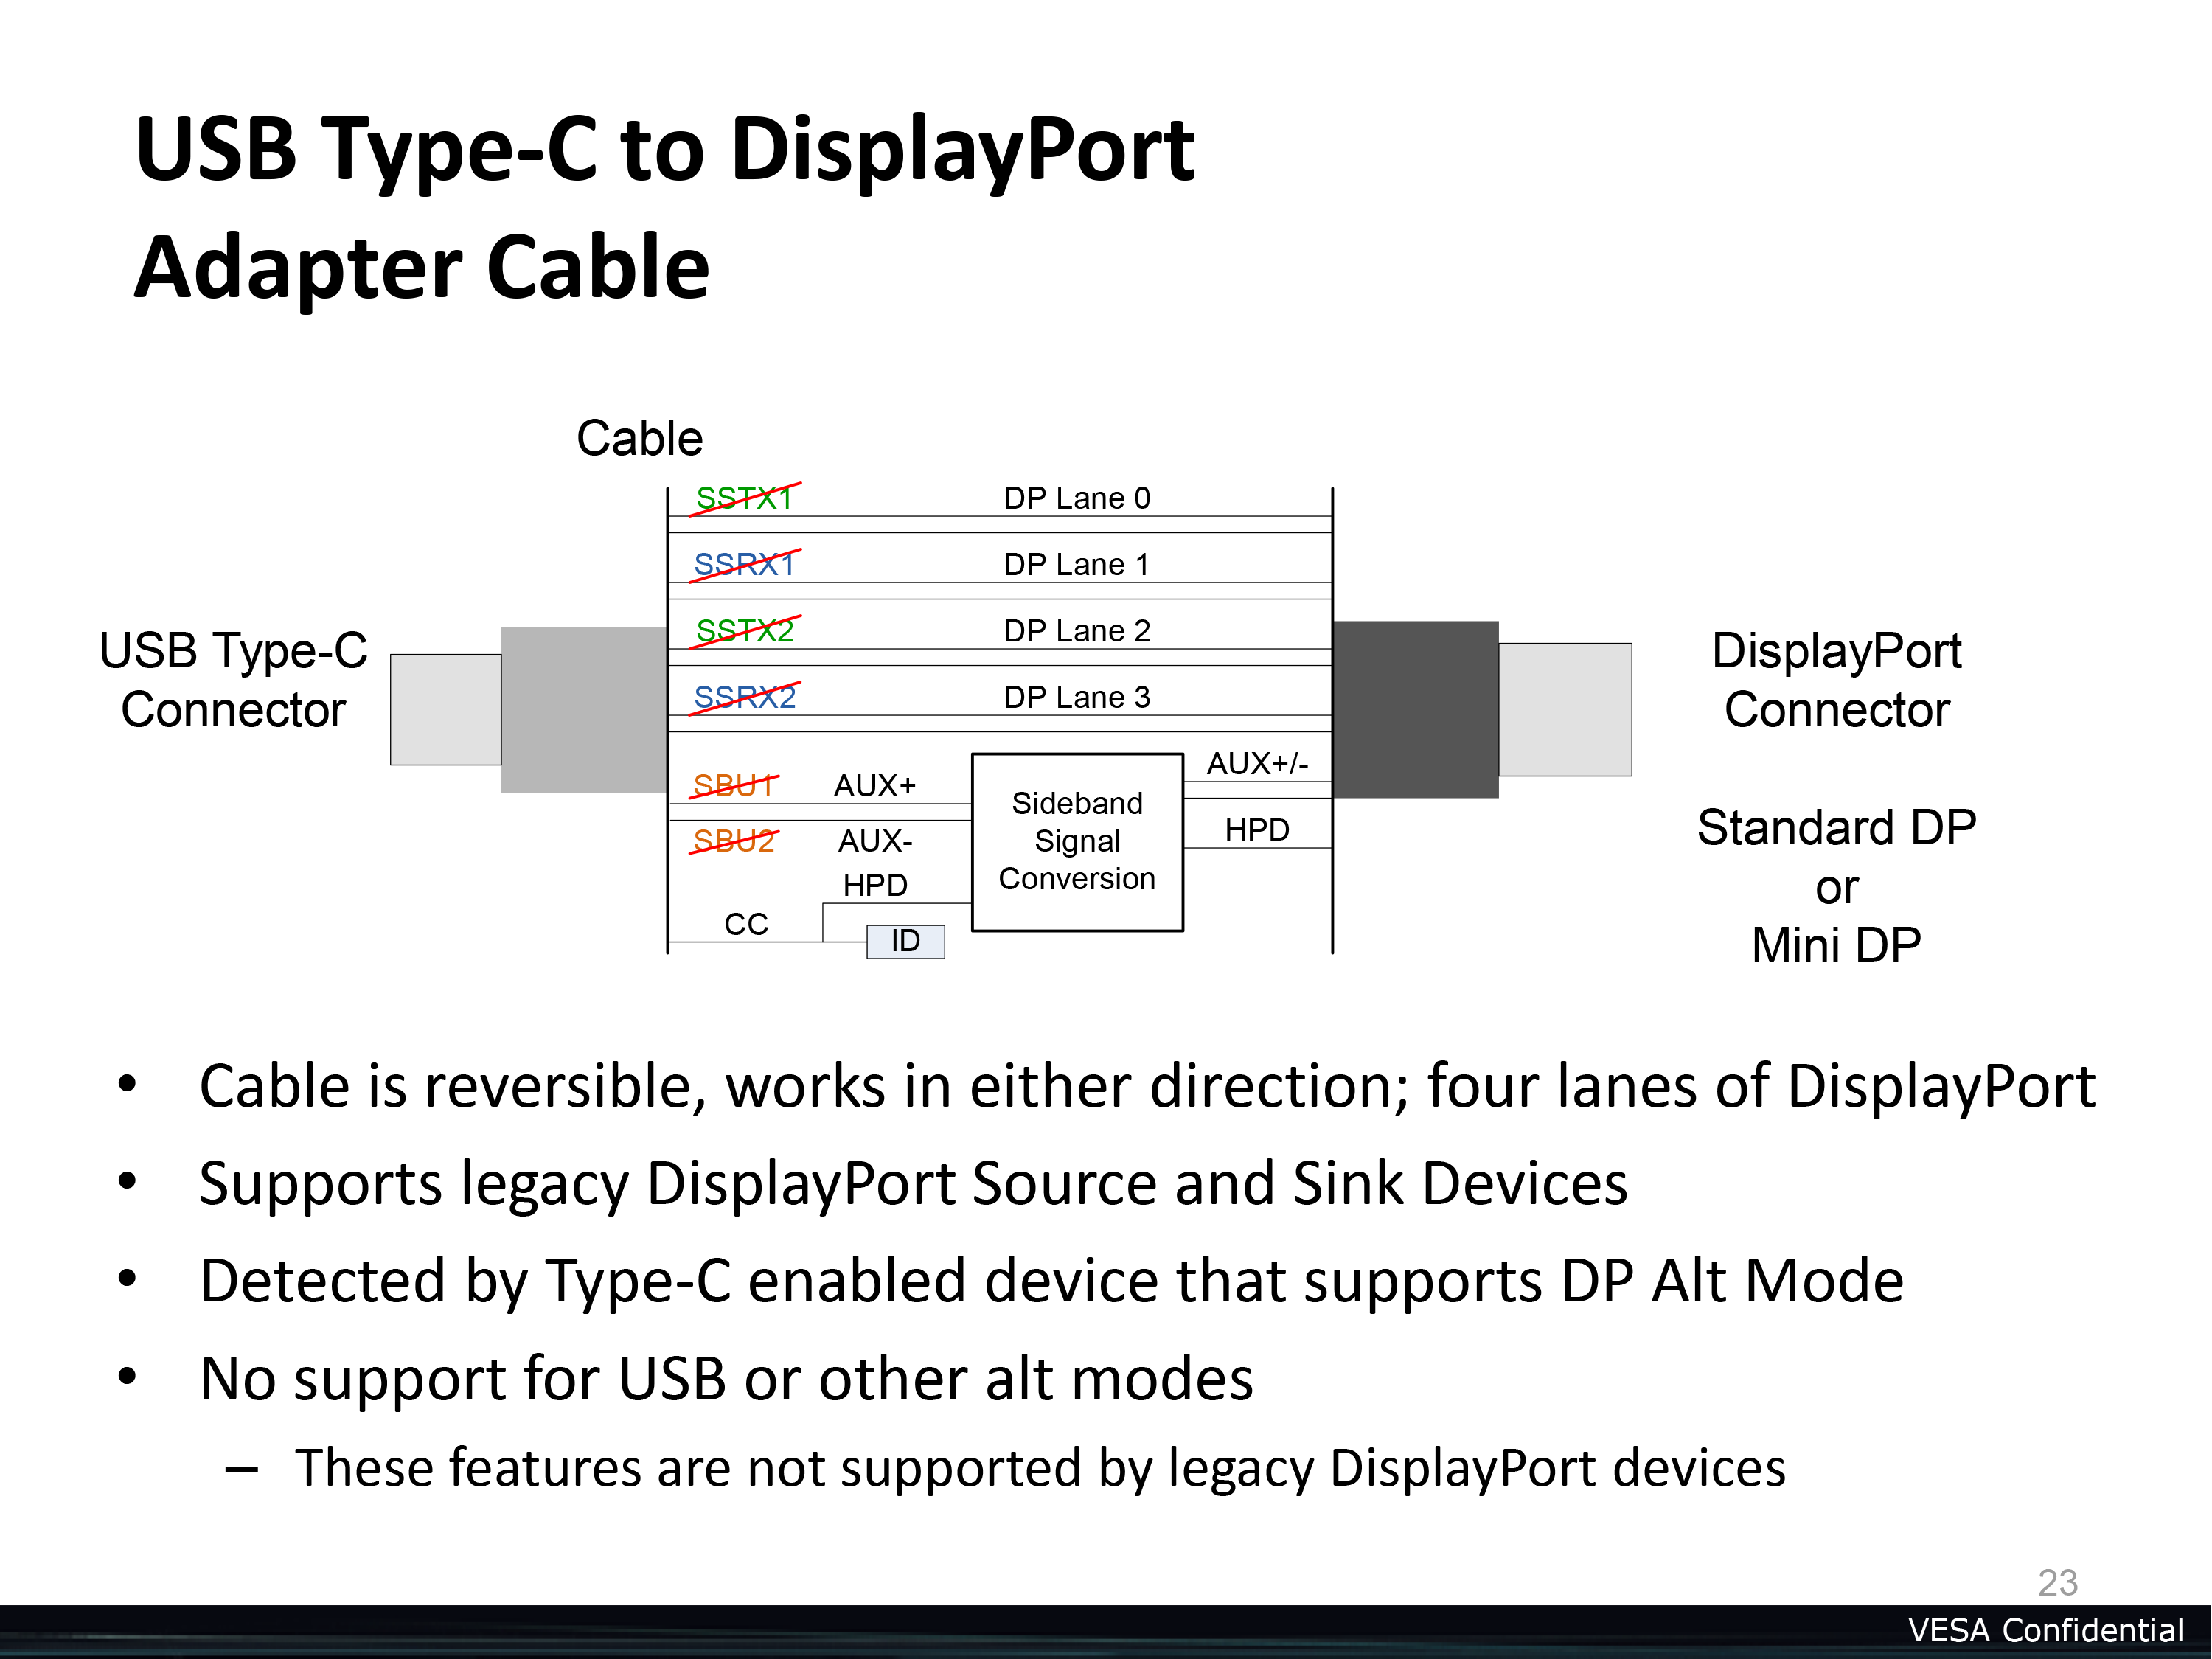 displayport alternate mode for usb type c announced video power rh anandtech com RJ45 Cable Wiring Diagram Cat 4 Cable Wiring Diagram